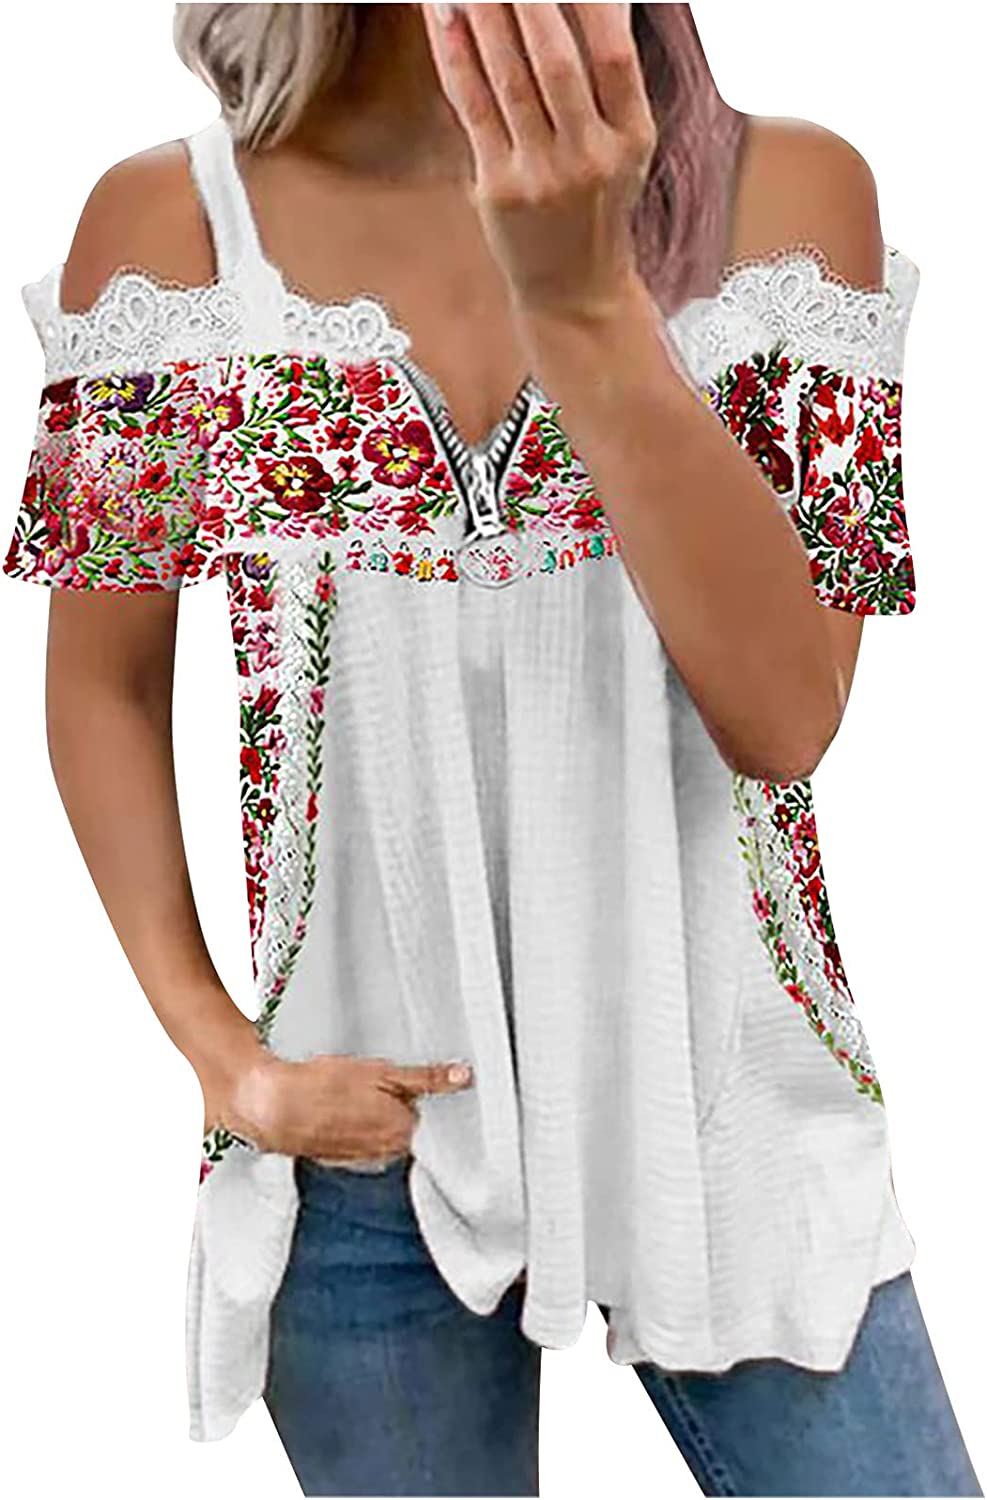 Womens Summer T Shirts Short Sleeve V Neck Tees Casual Lace Blouse Zipper Hollow Out Tops Cold Shoulder